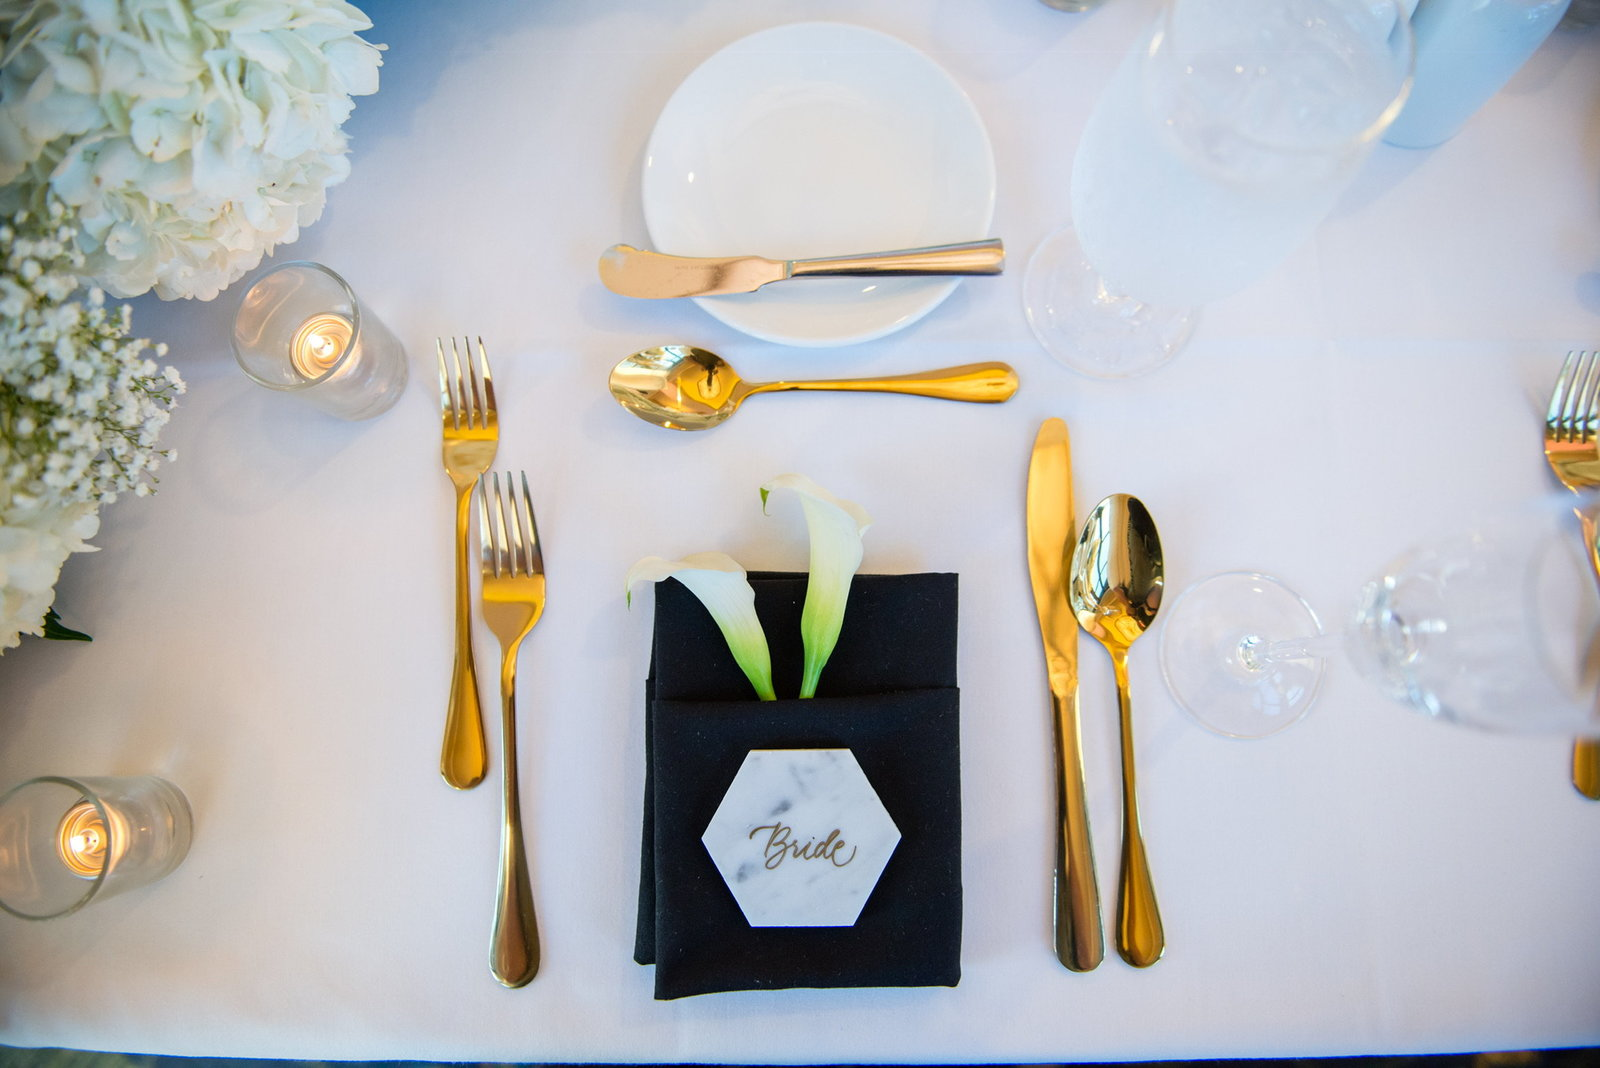 jomygoodness-gold-calligraphy-white-hexagon-tile-bride-place-setting